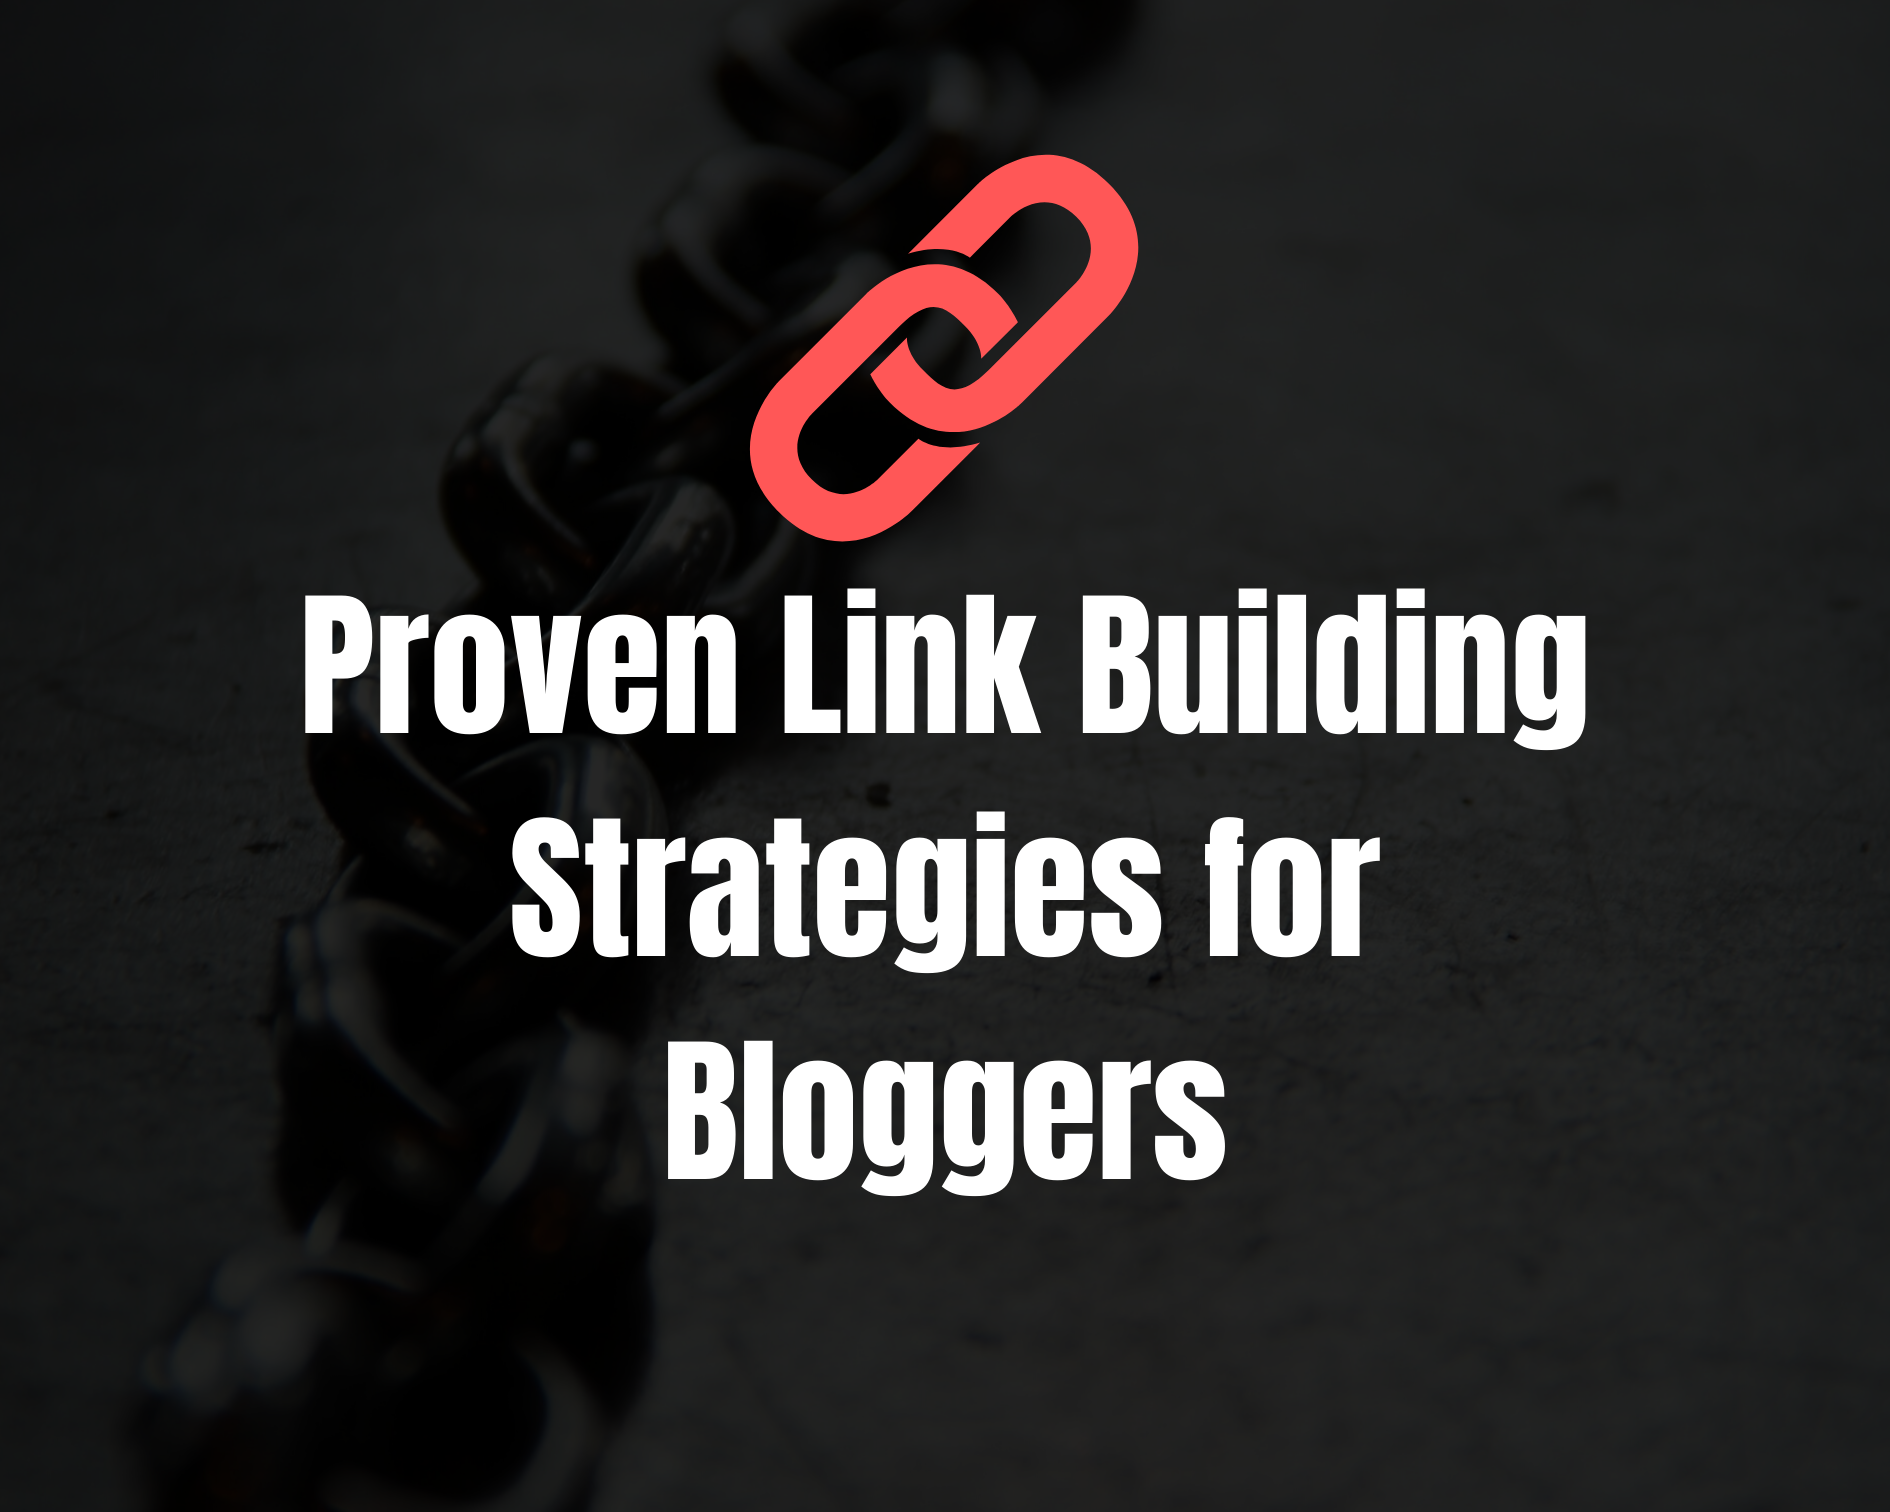 Top 7 Proven Link Building Strategies for Bloggers in 2021